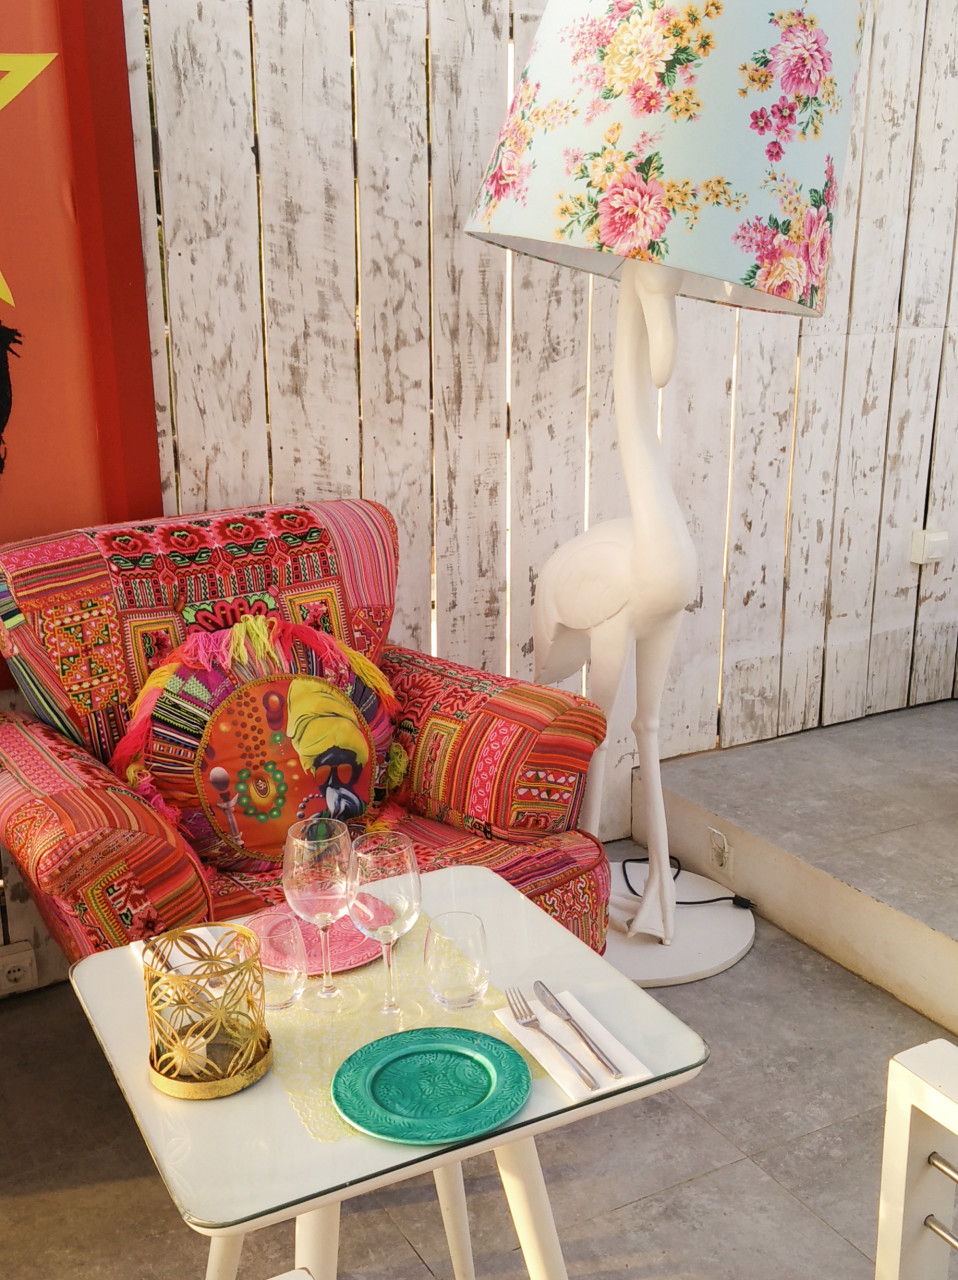 patchwork armchair next to a flamingo floor standing lamp with a floral shade